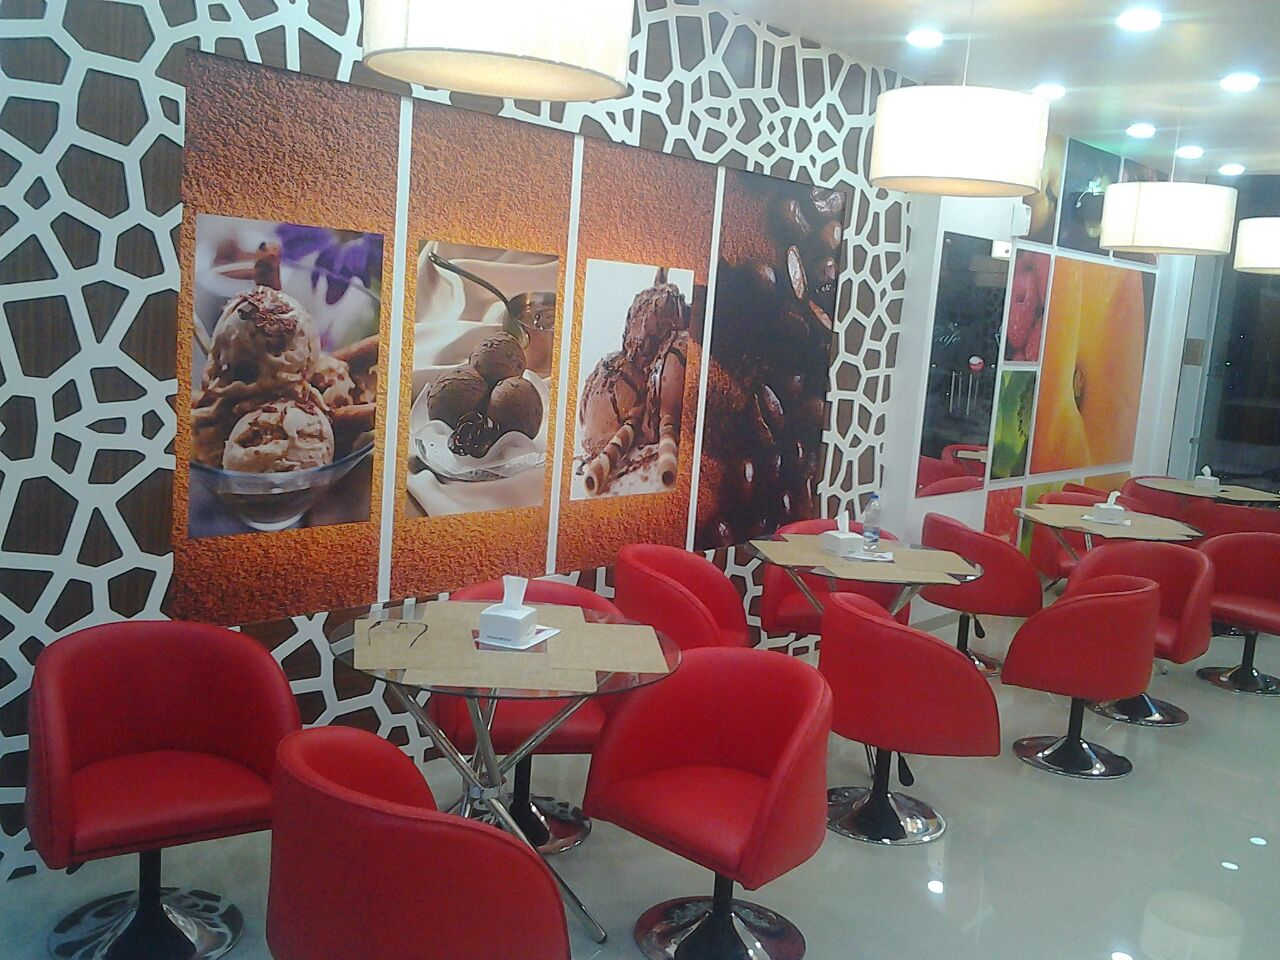 Running Cafe with Ice Cream Parlour Business for Sale in Ahmedabad